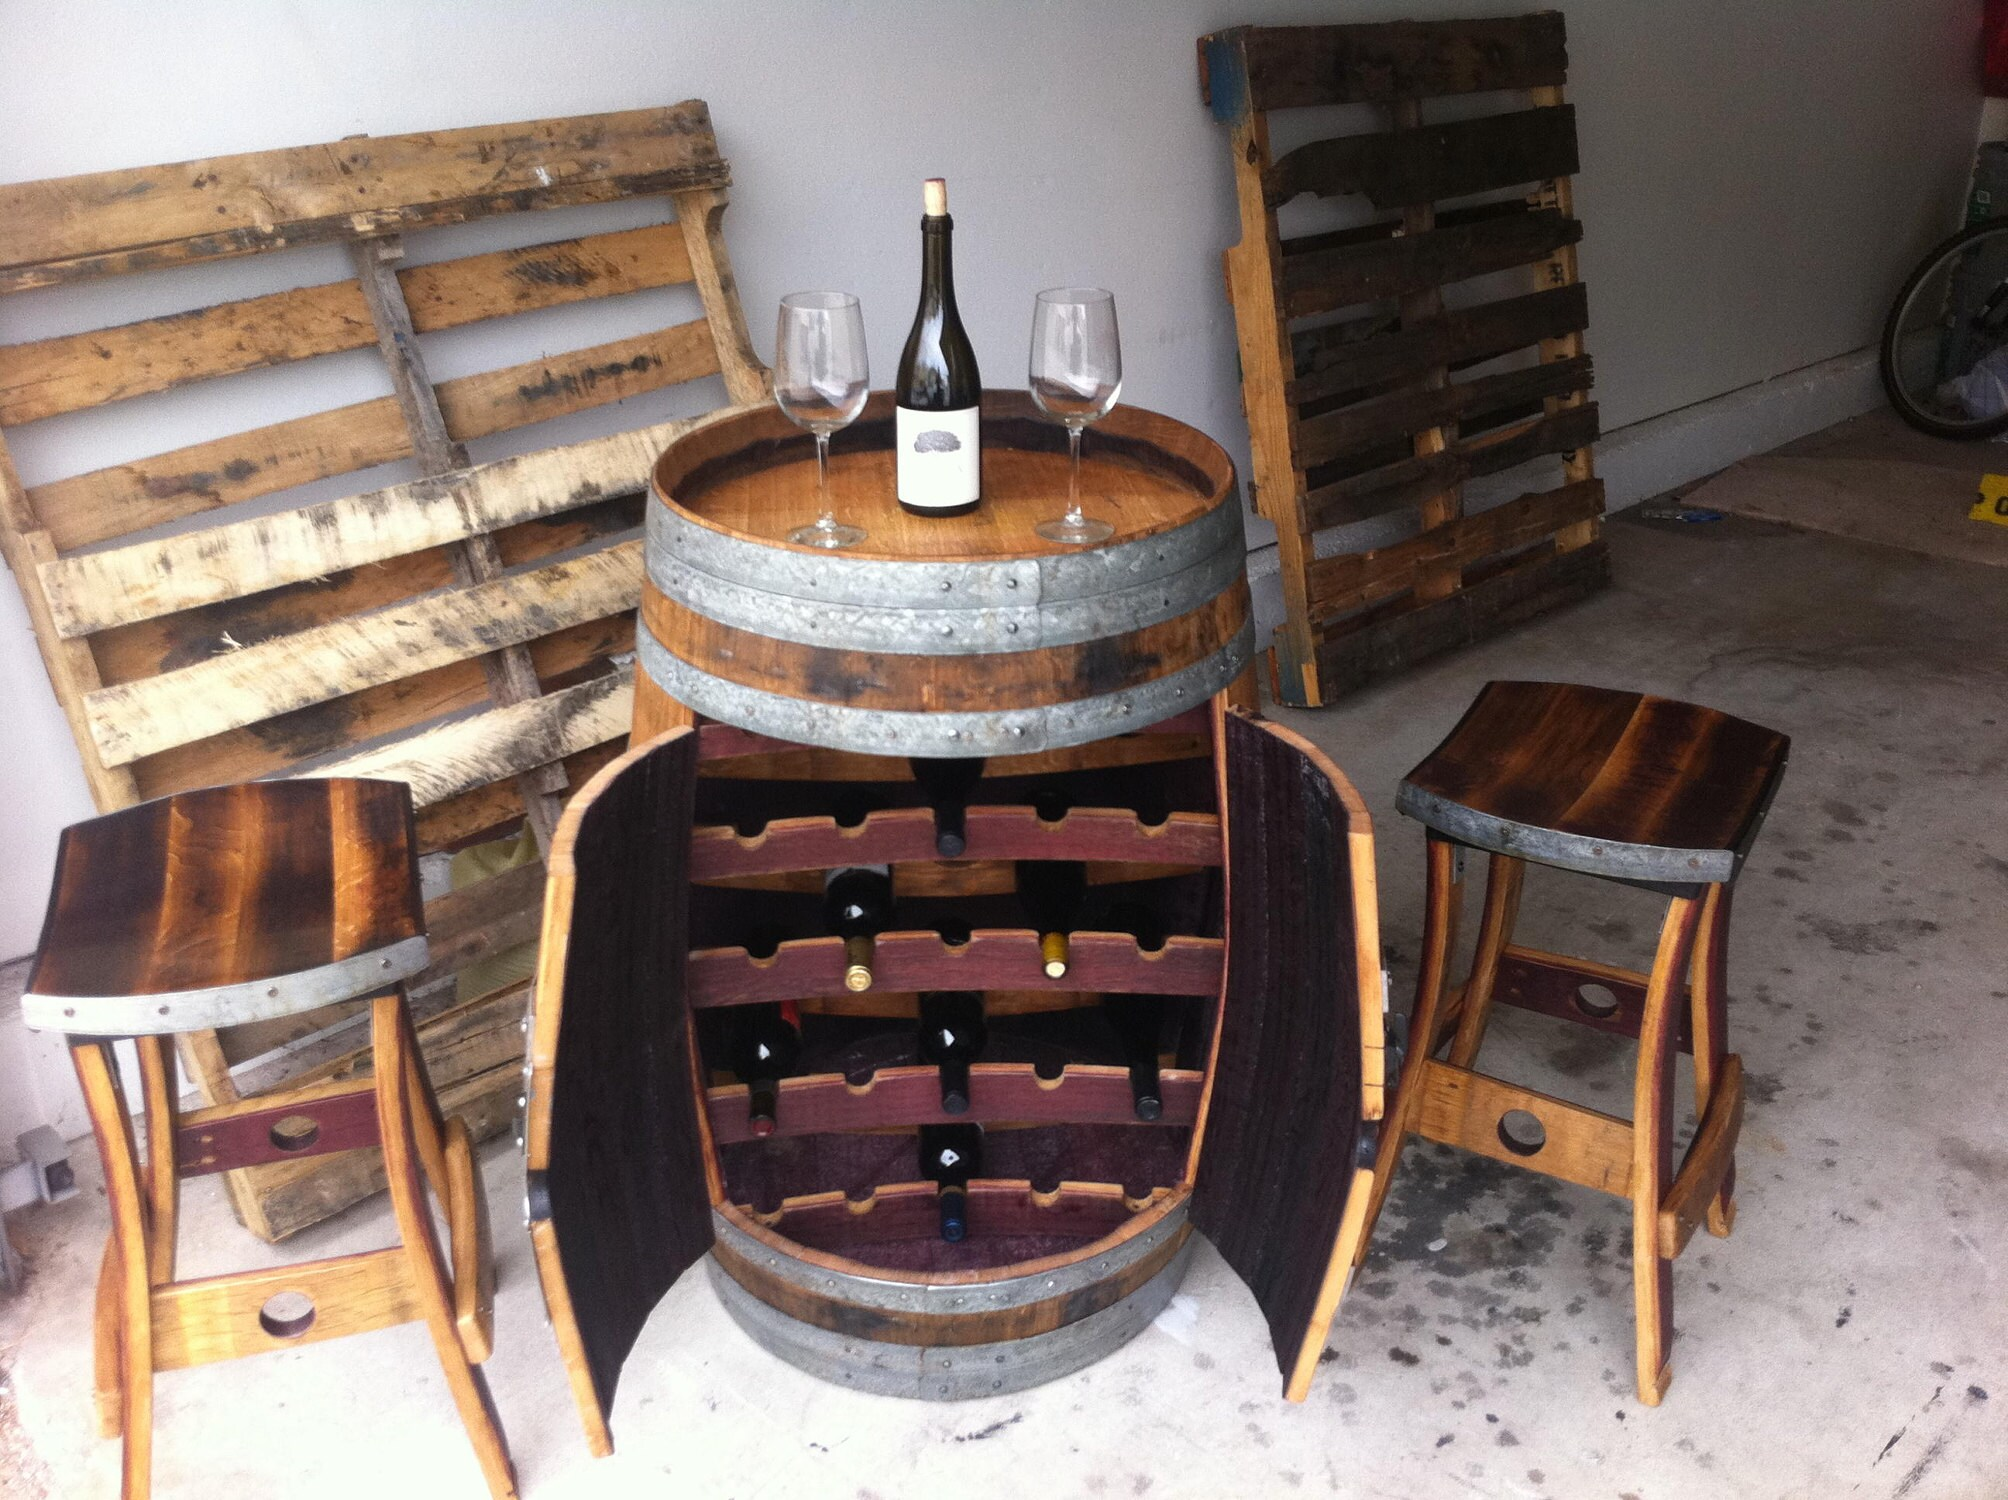 enchanting images amarone barrel wine full shelves wall bookcase bottle rack preparing zoom trendy and crate holder